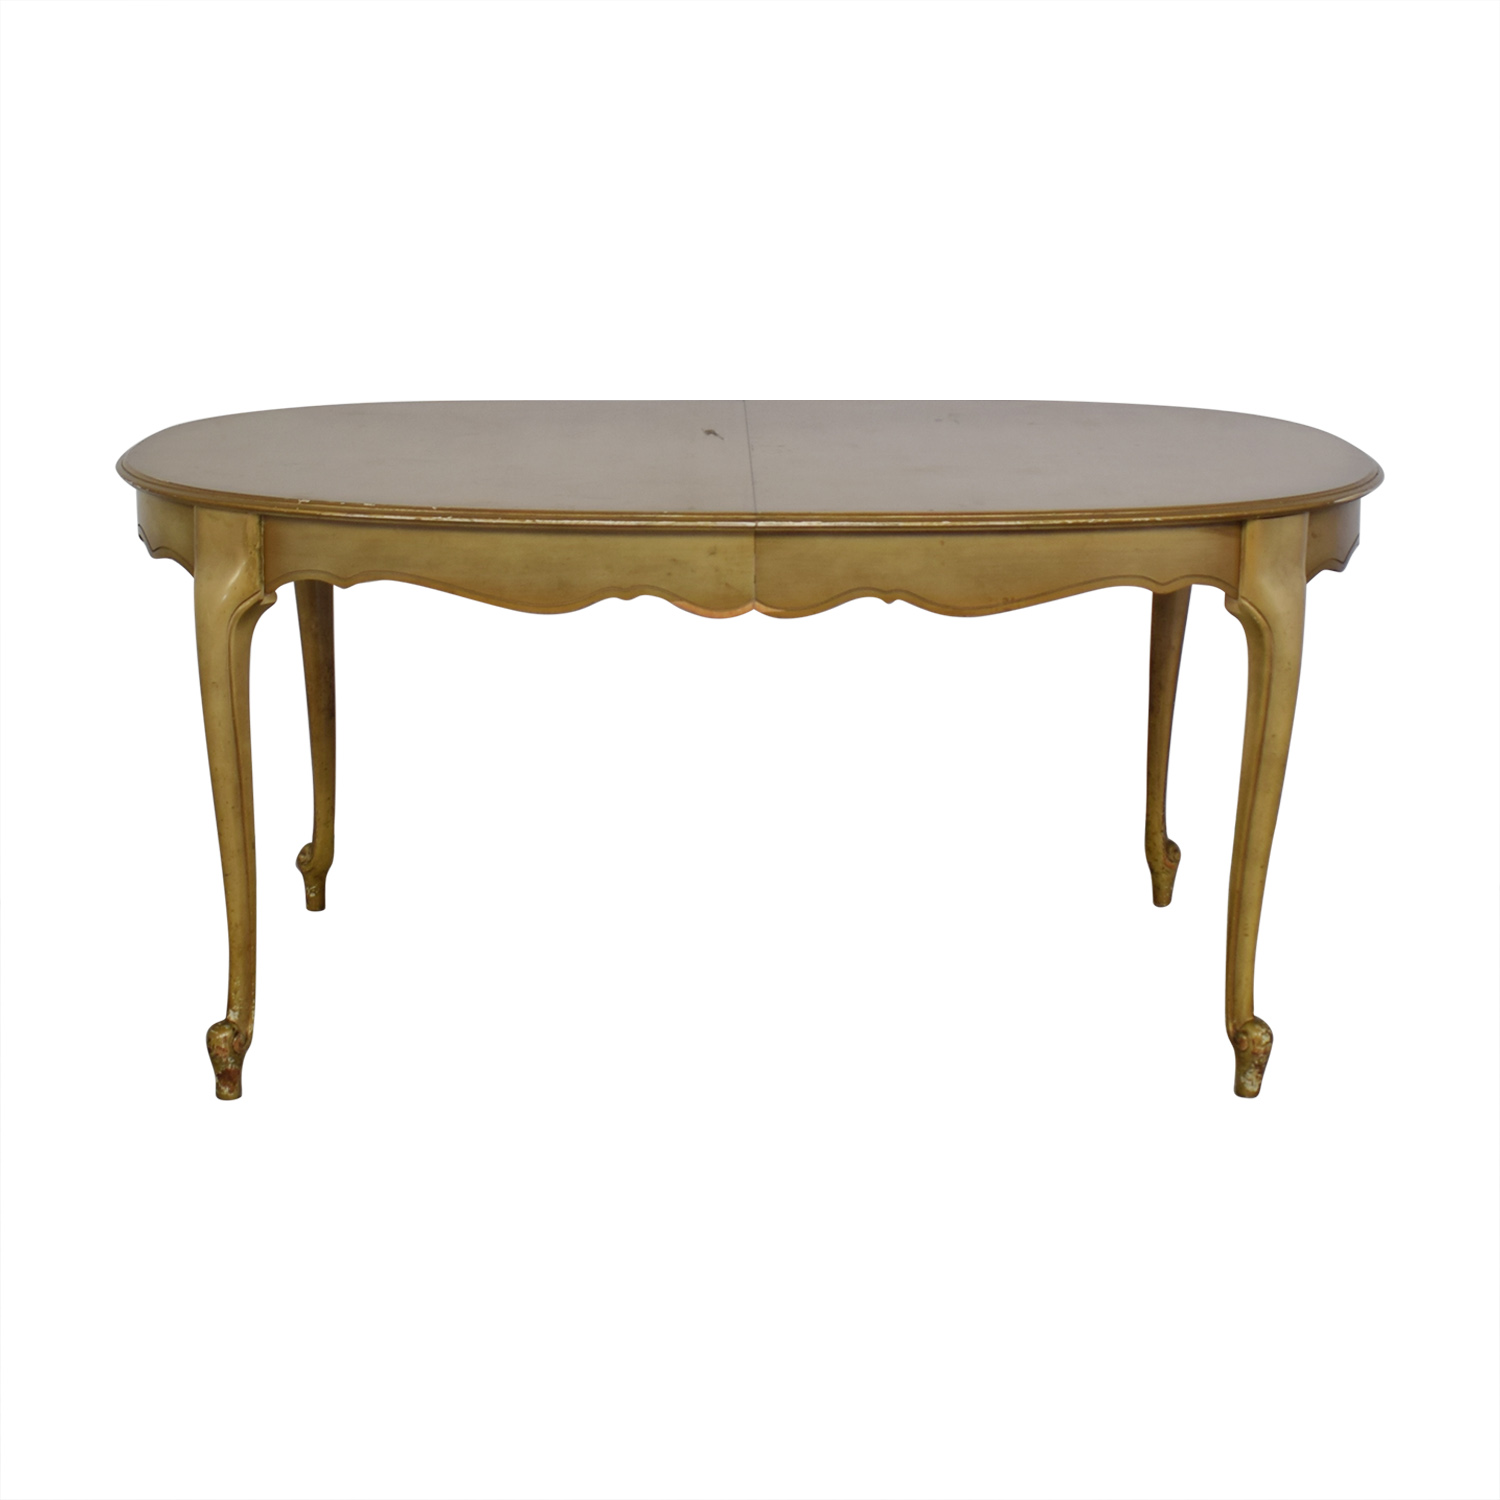 Oval Dining Table with Center Leaf used